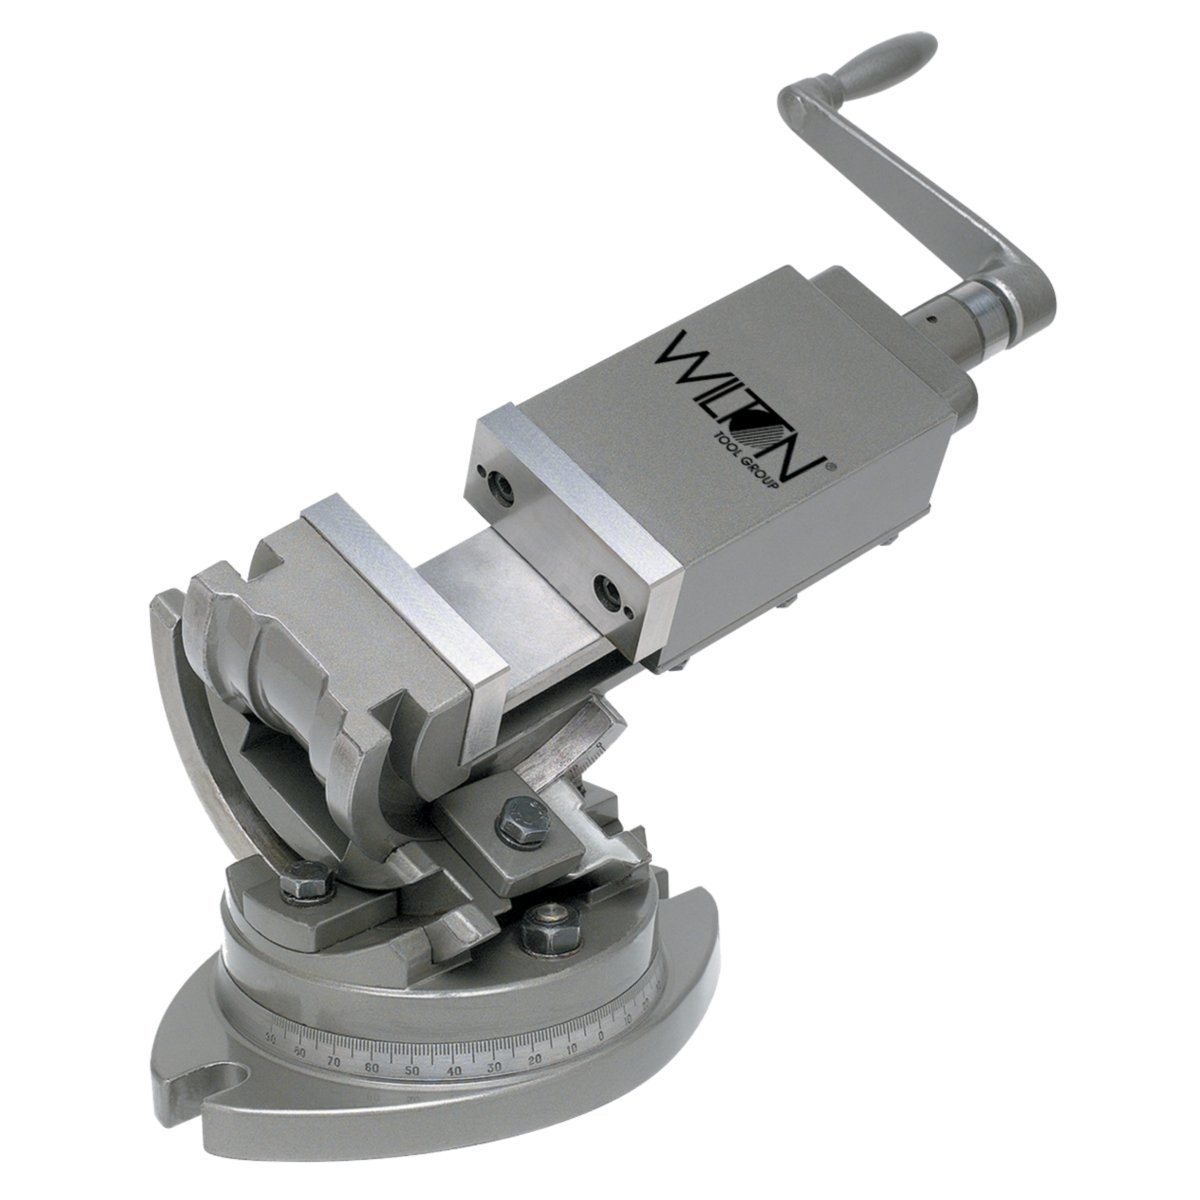 Wilton 11803 3-Axis Precision Tilting Vise 5-Inch Jaw Width, 1-3/4-Inch Depth by Wilton